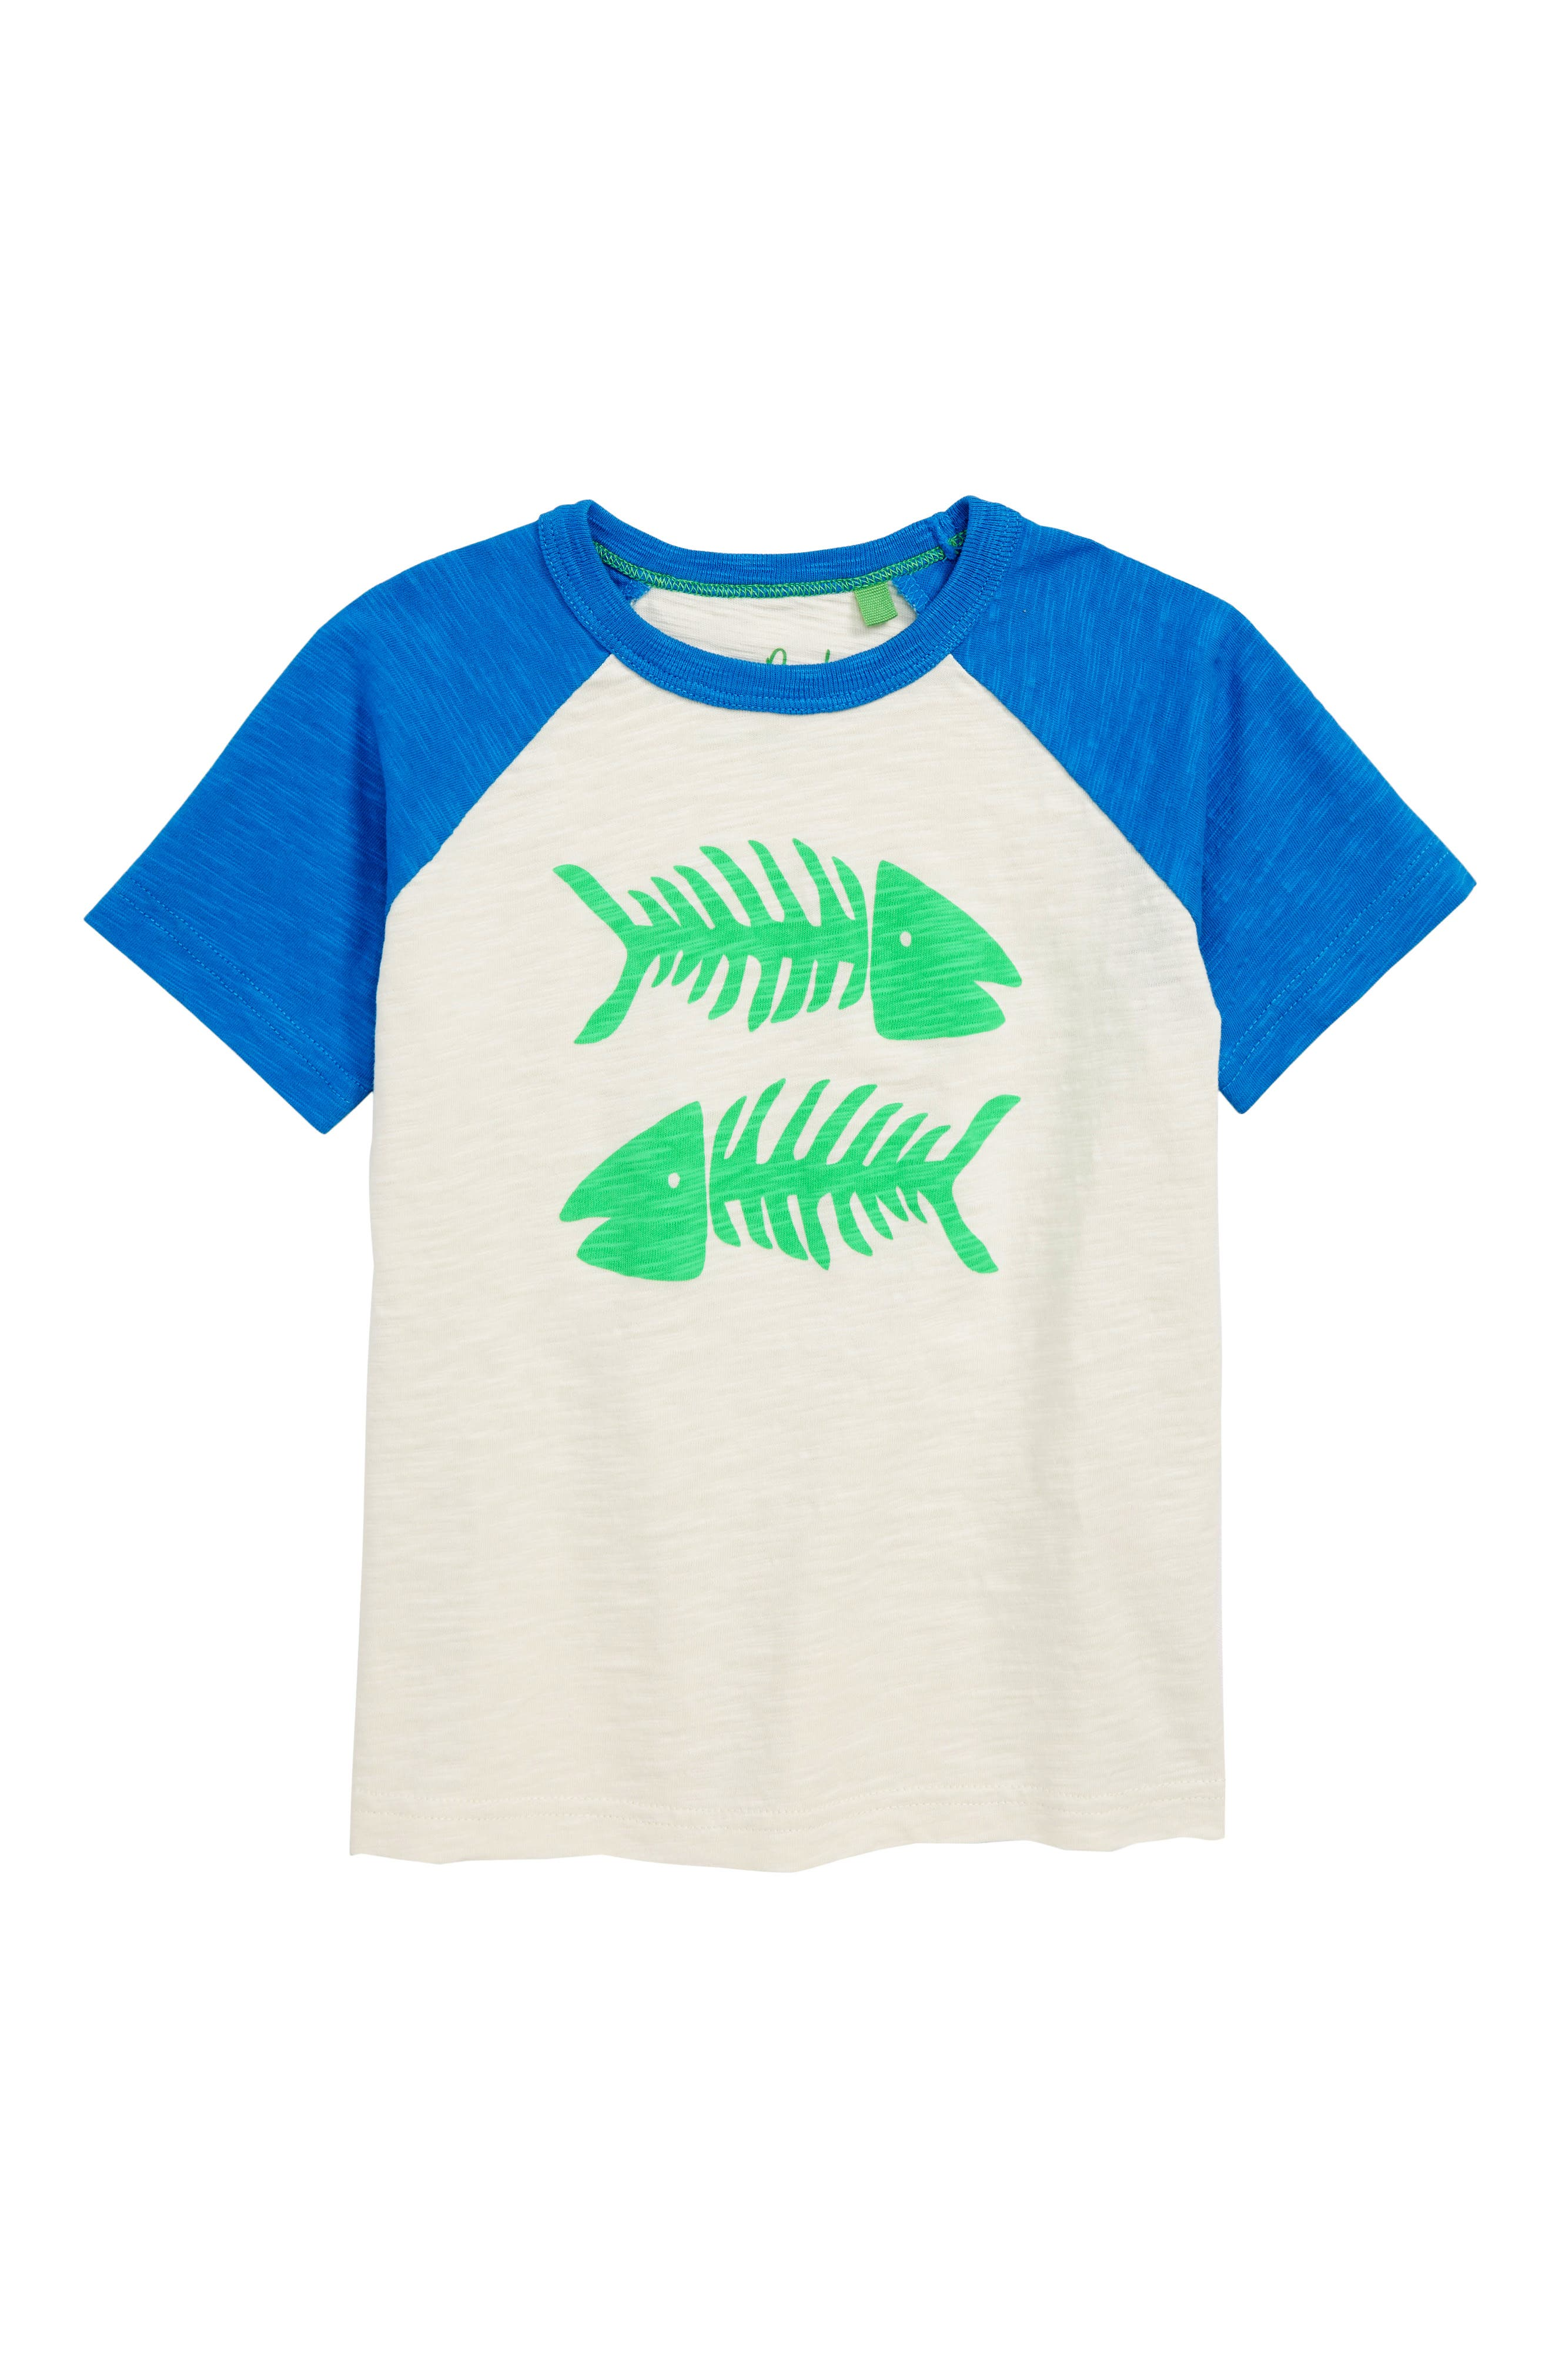 Summer Raglan T-Shirt,                             Main thumbnail 1, color,                             Ecru/ Orion Blue Fish